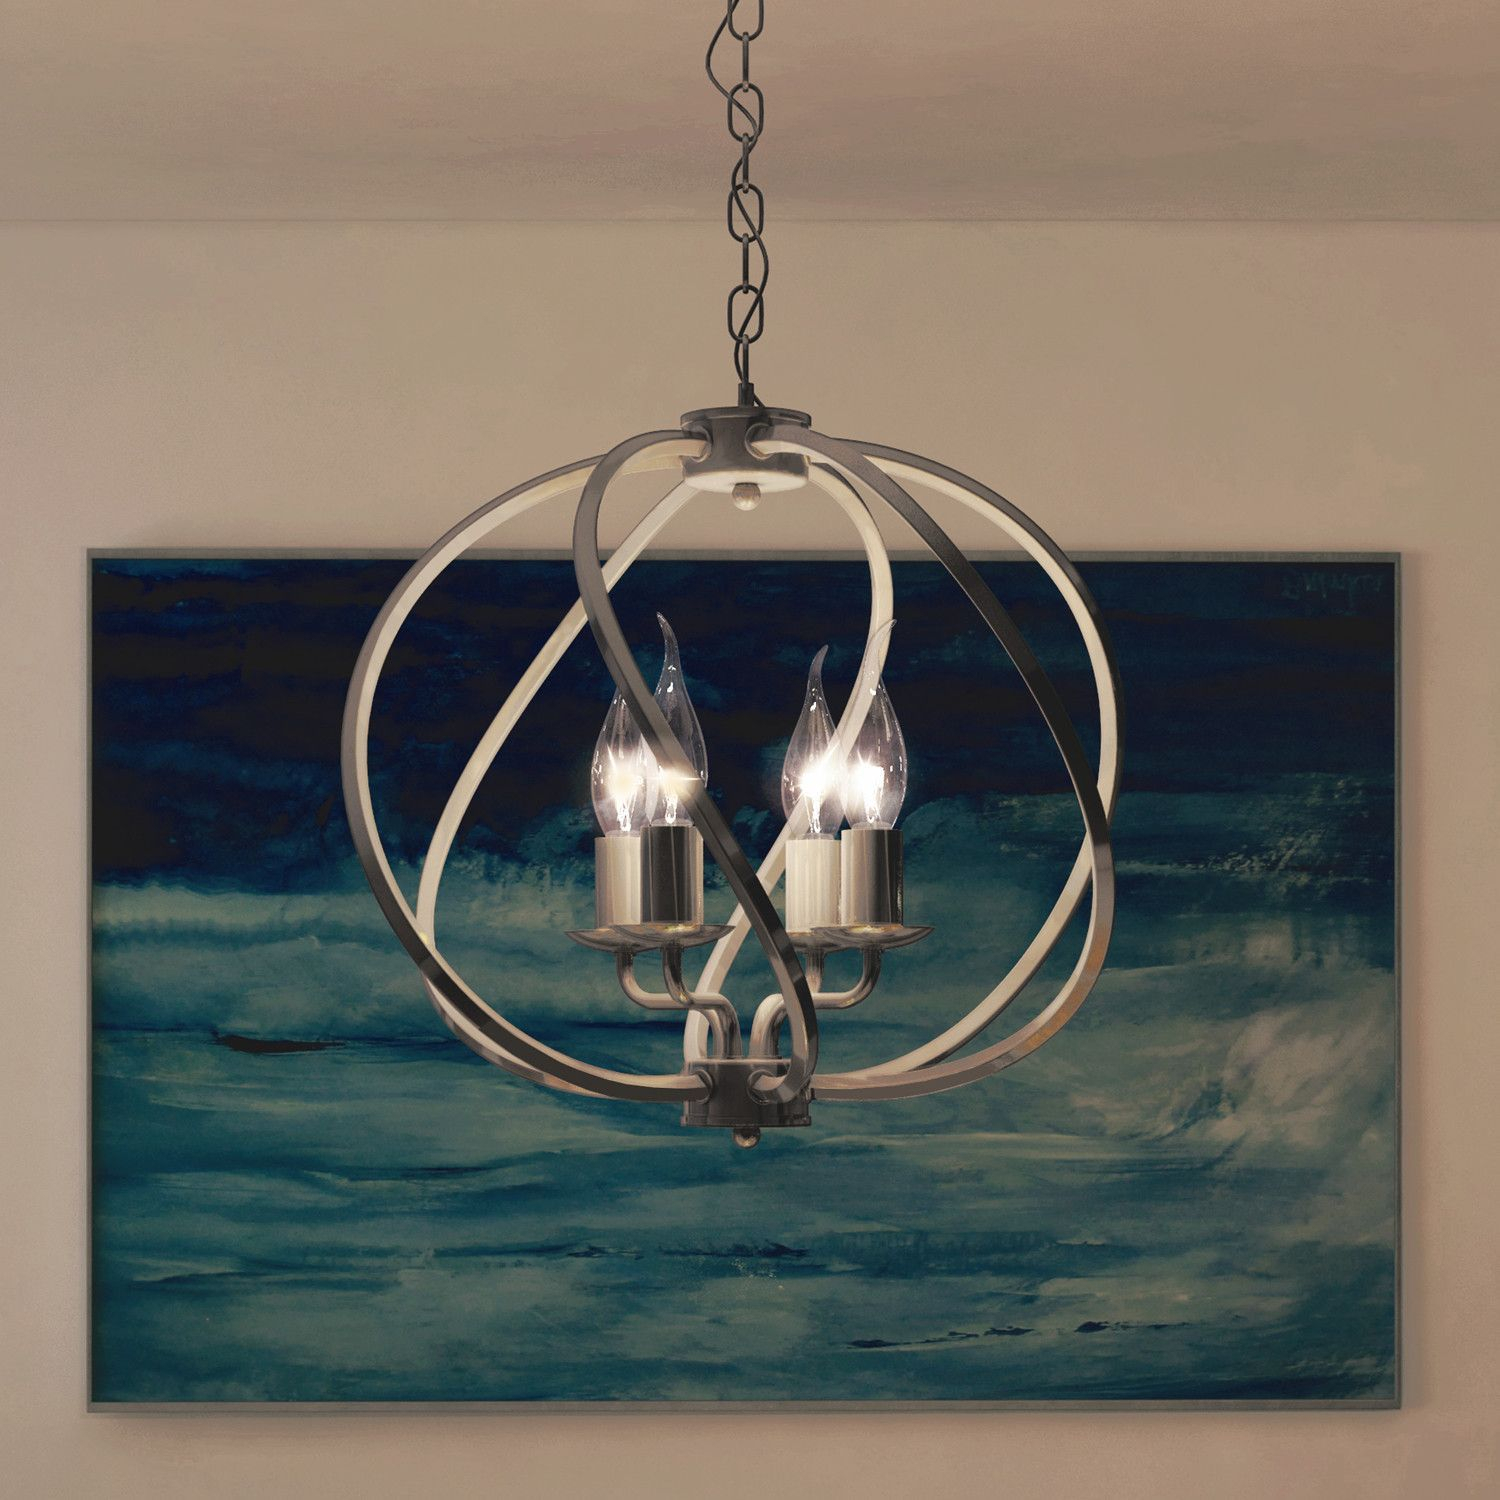 Sargas 4 Light Globe Pendant | Products | Lighting, Led With Regard To Hendry 4 Light Globe Chandeliers (View 23 of 30)